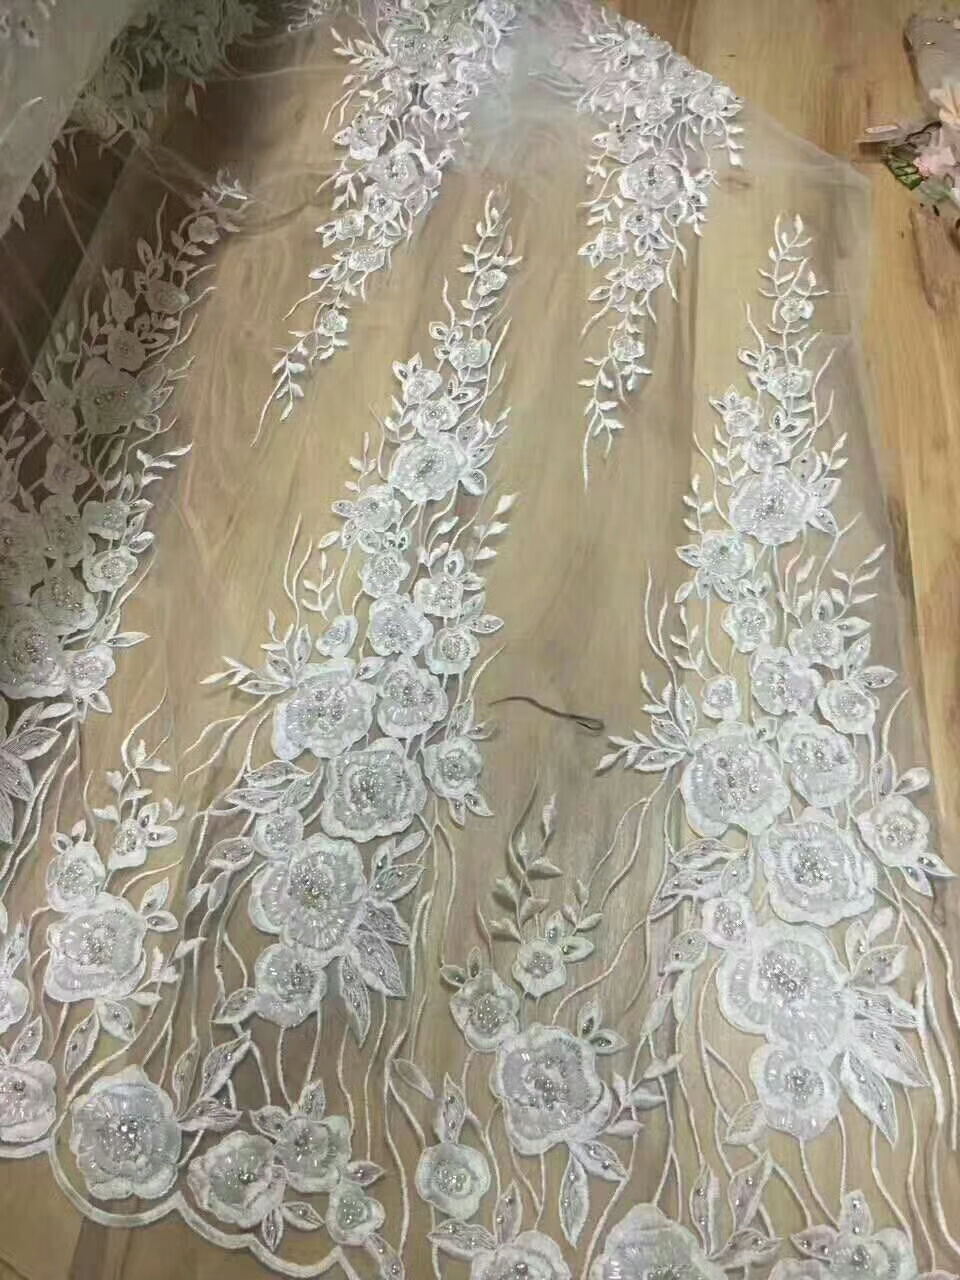 Ebay Motors White Beaded Appliqued Lace Fabric High Quality Latest African Lace 2018 Noble Handmade 3d Lace Fabric For Nigerian Party Fxa7 Parts & Accessories